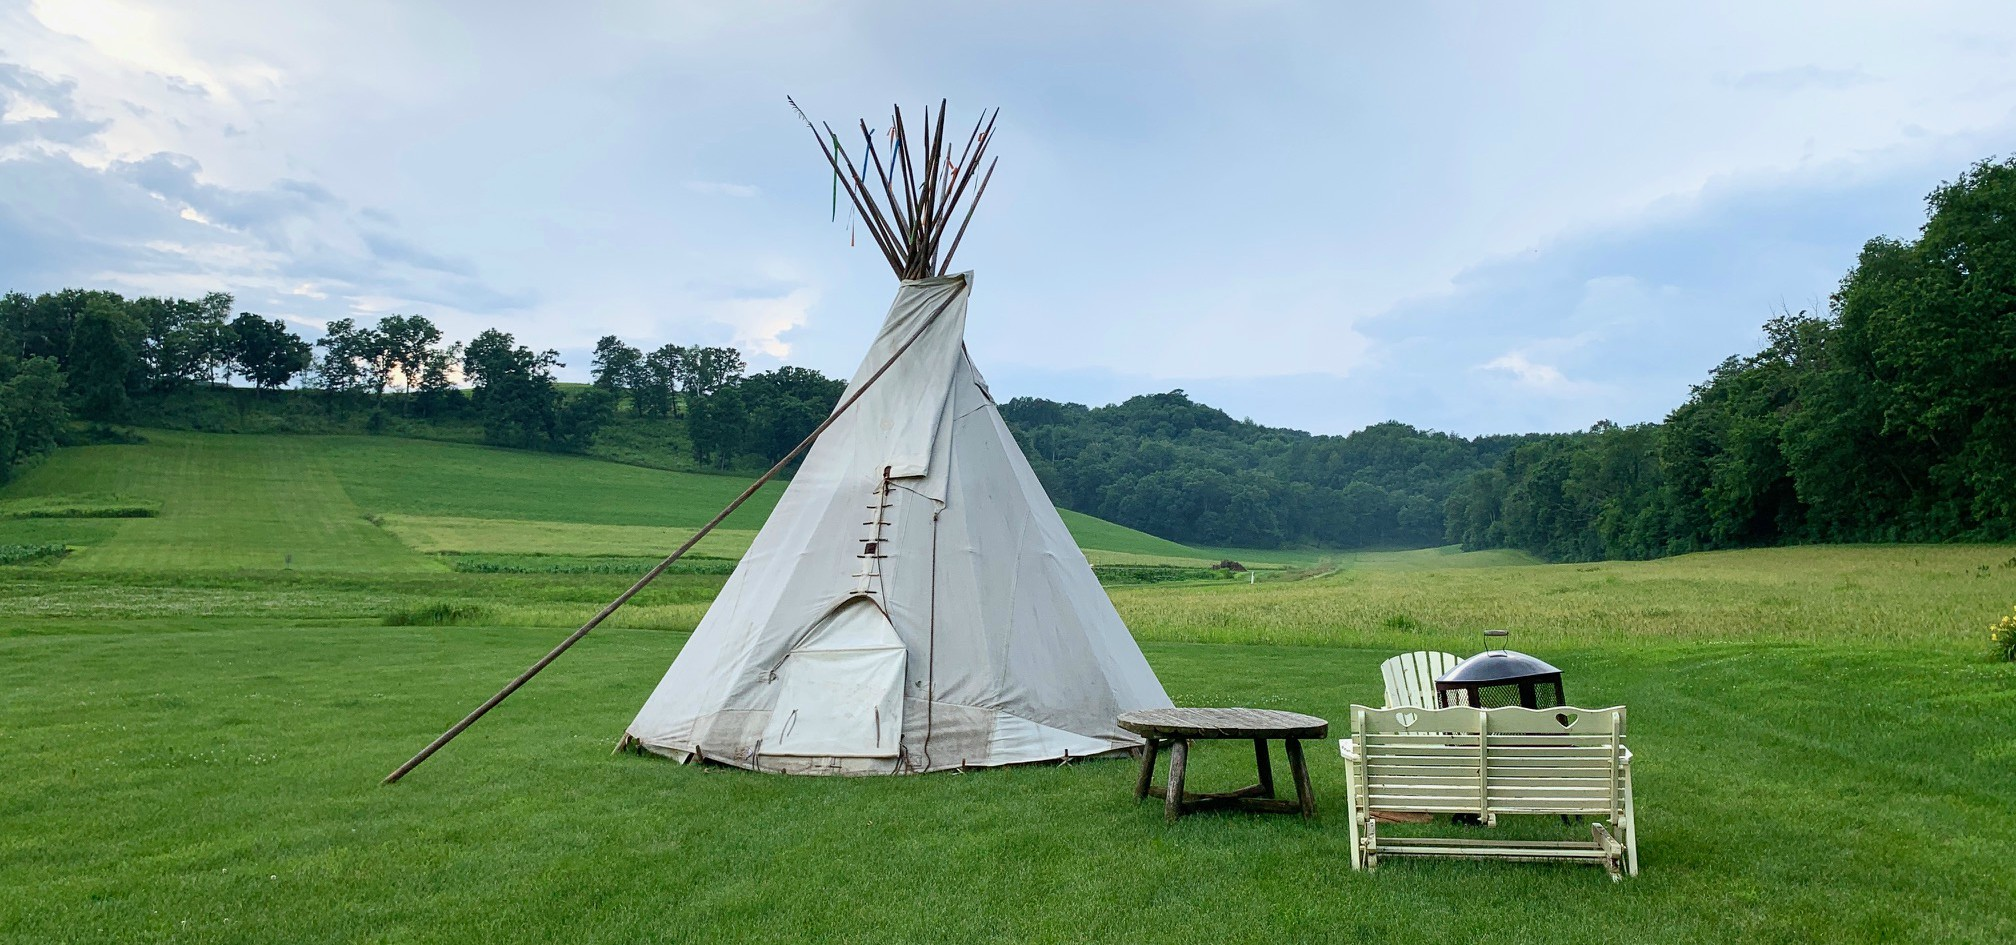 H and-crafted Sioux-style Tipi created by the Colorado Yurt Company